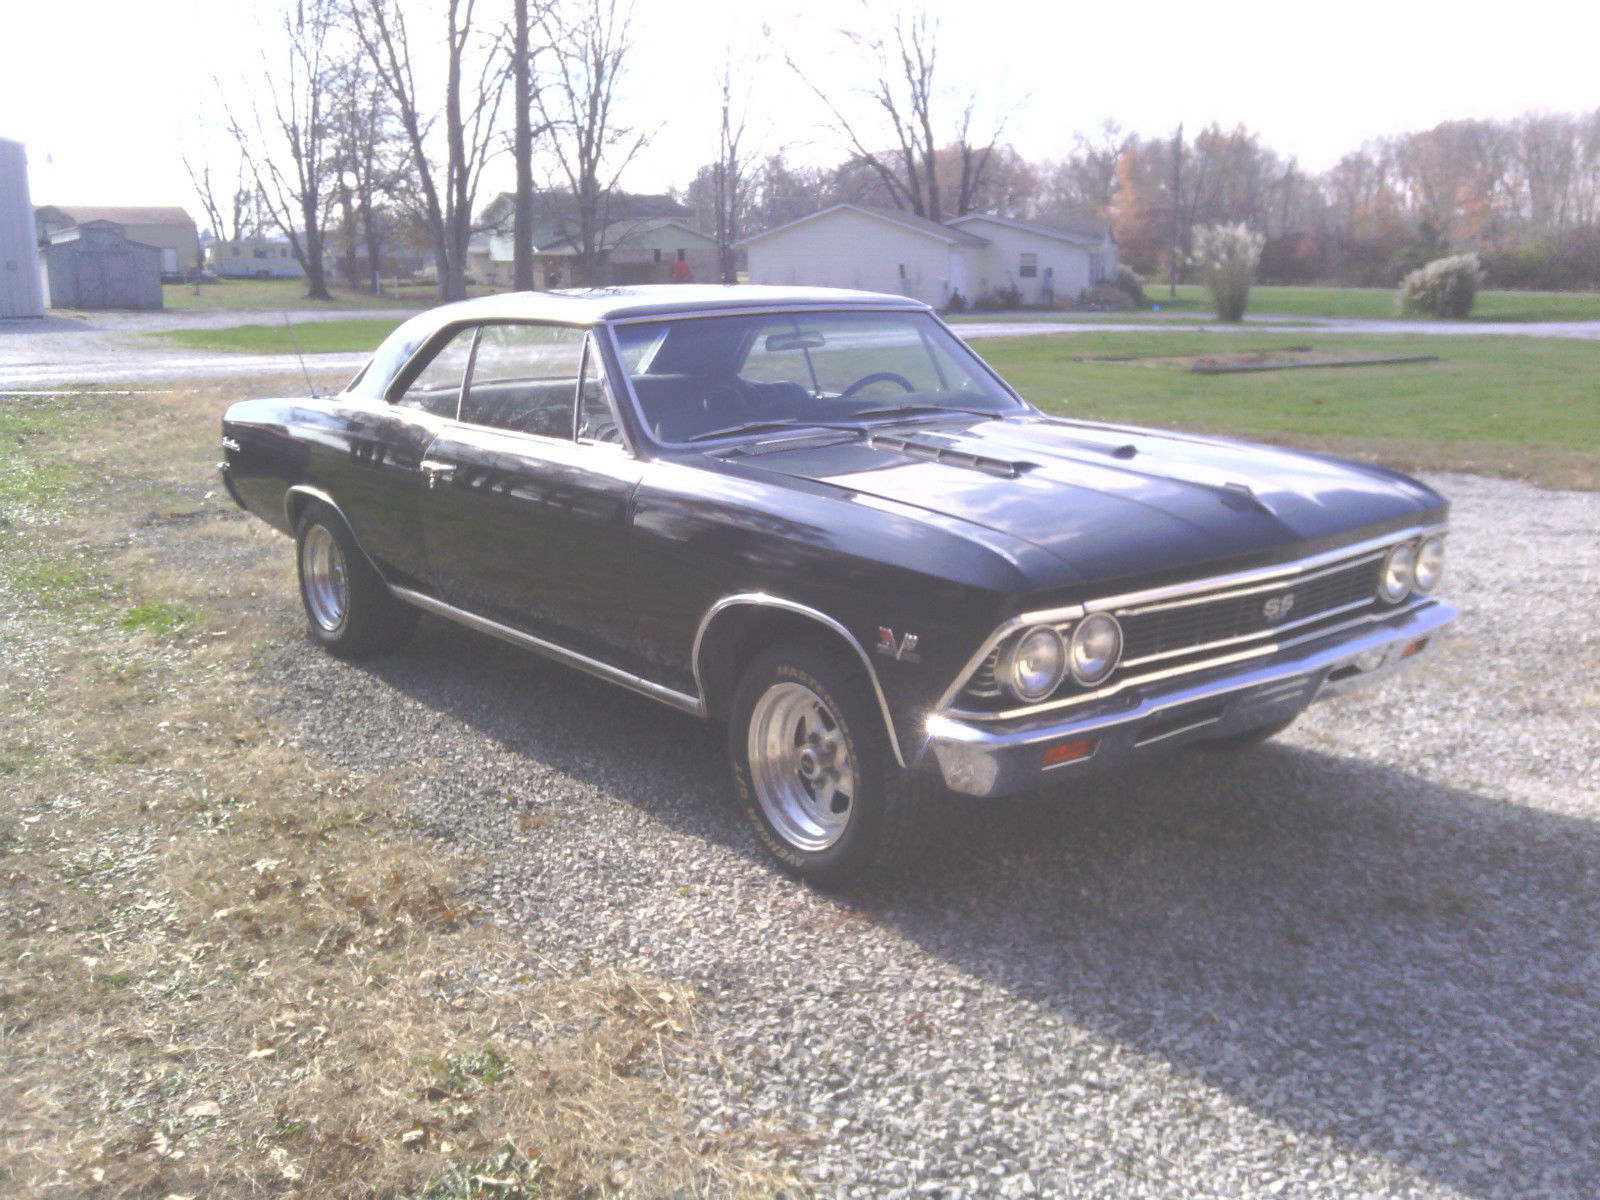 1966 chevelle malibu ss clone classic chevrolet chevelle. Black Bedroom Furniture Sets. Home Design Ideas